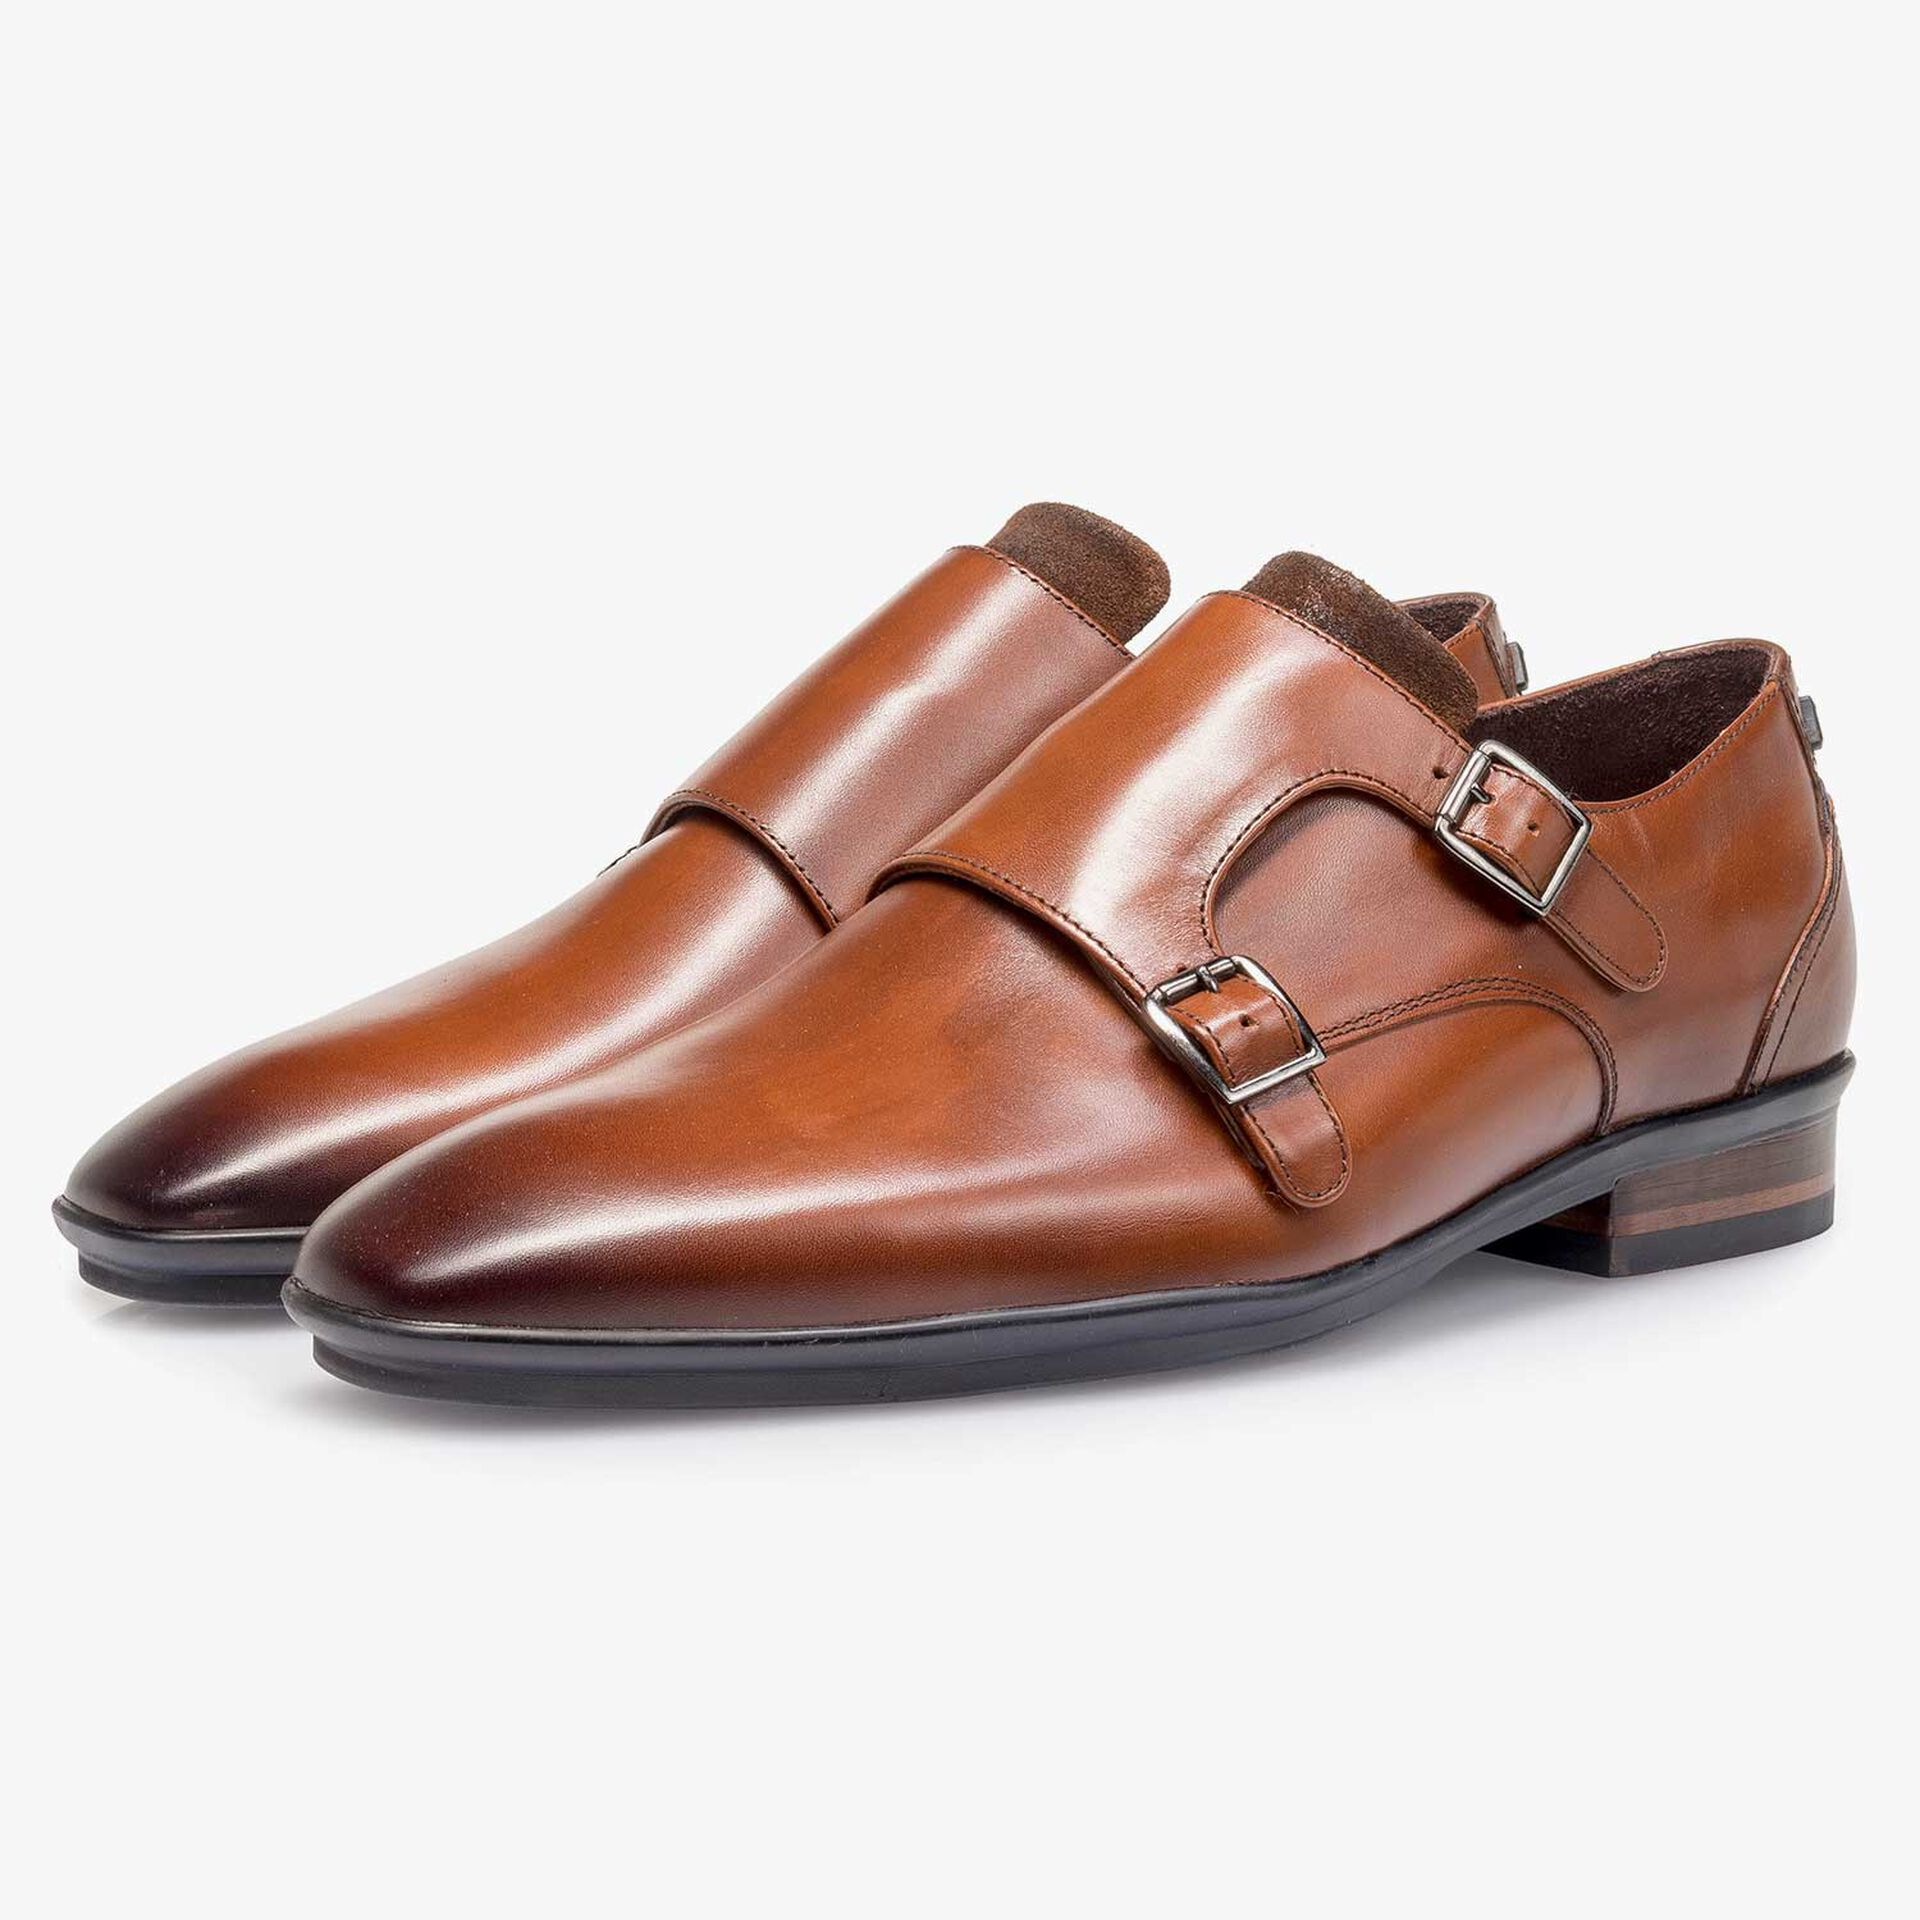 Cognac-coloured calf leather double buckle monk strap